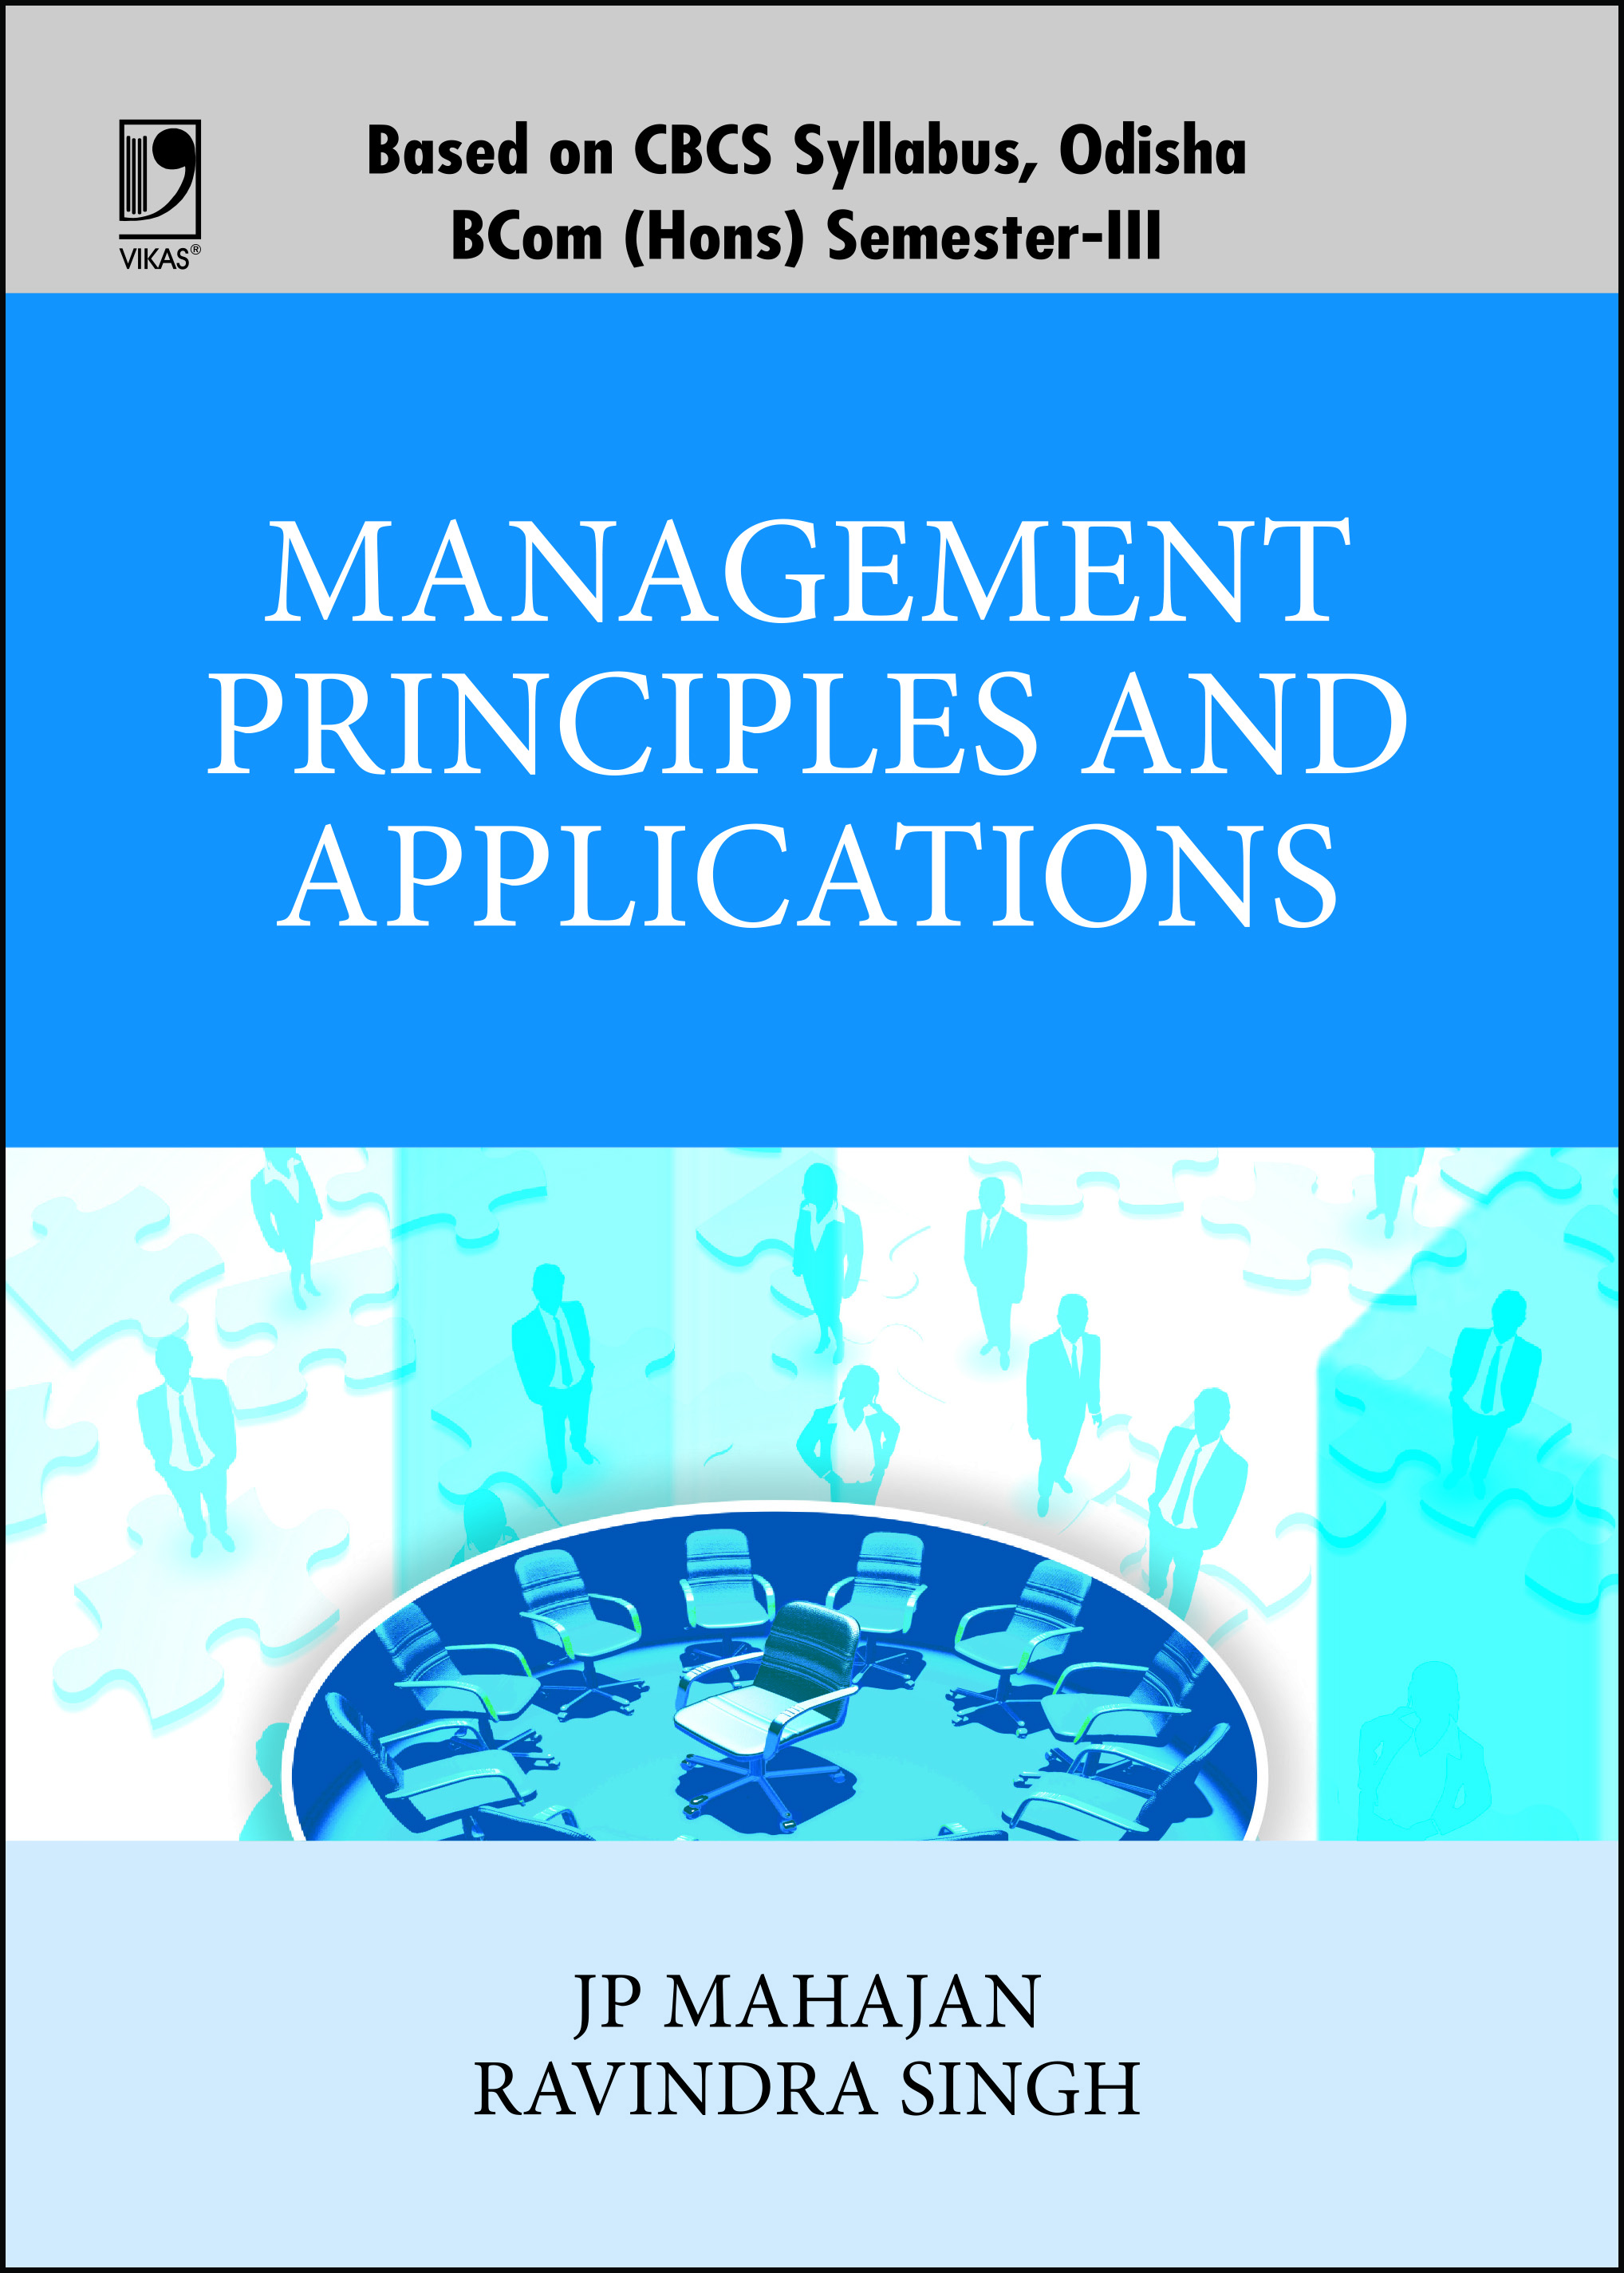 Management Principles and Applications (For B.Com. (Hons.) 3rd Semester, Odisha Universities)